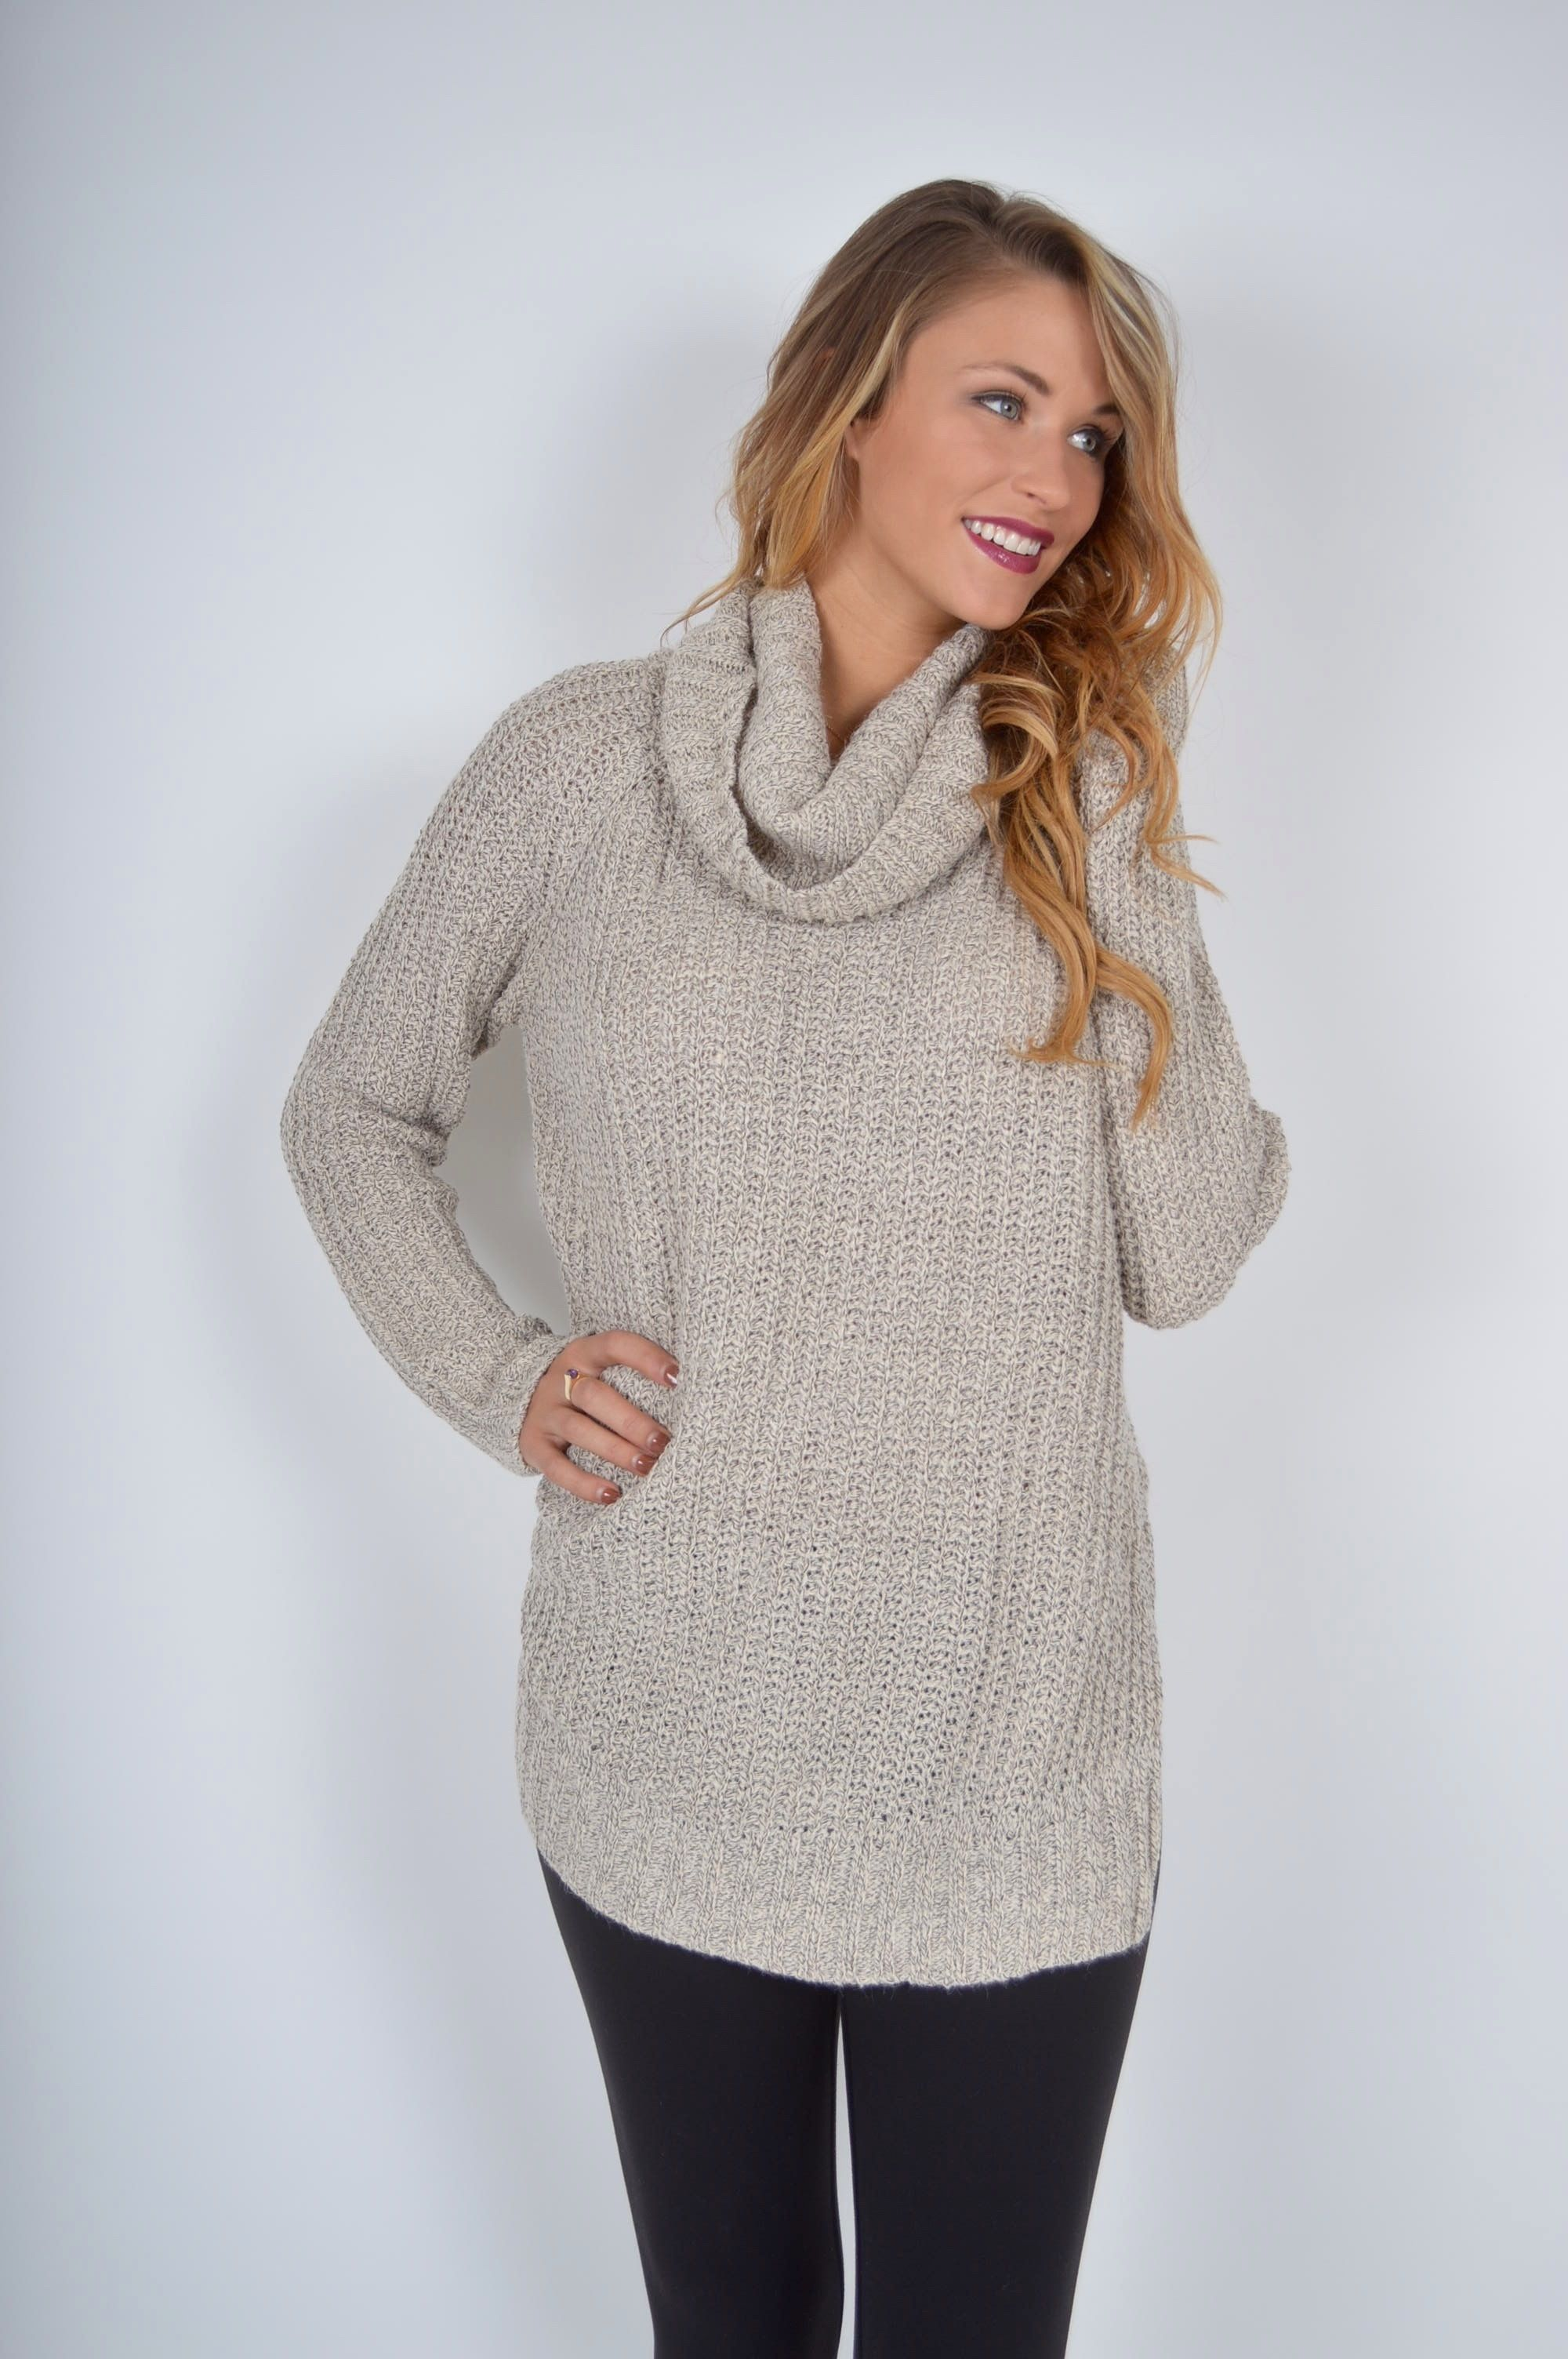 Cream Em Sweater | $49 | Foi Clothing | Taupe Knitted Turtle Neck ...